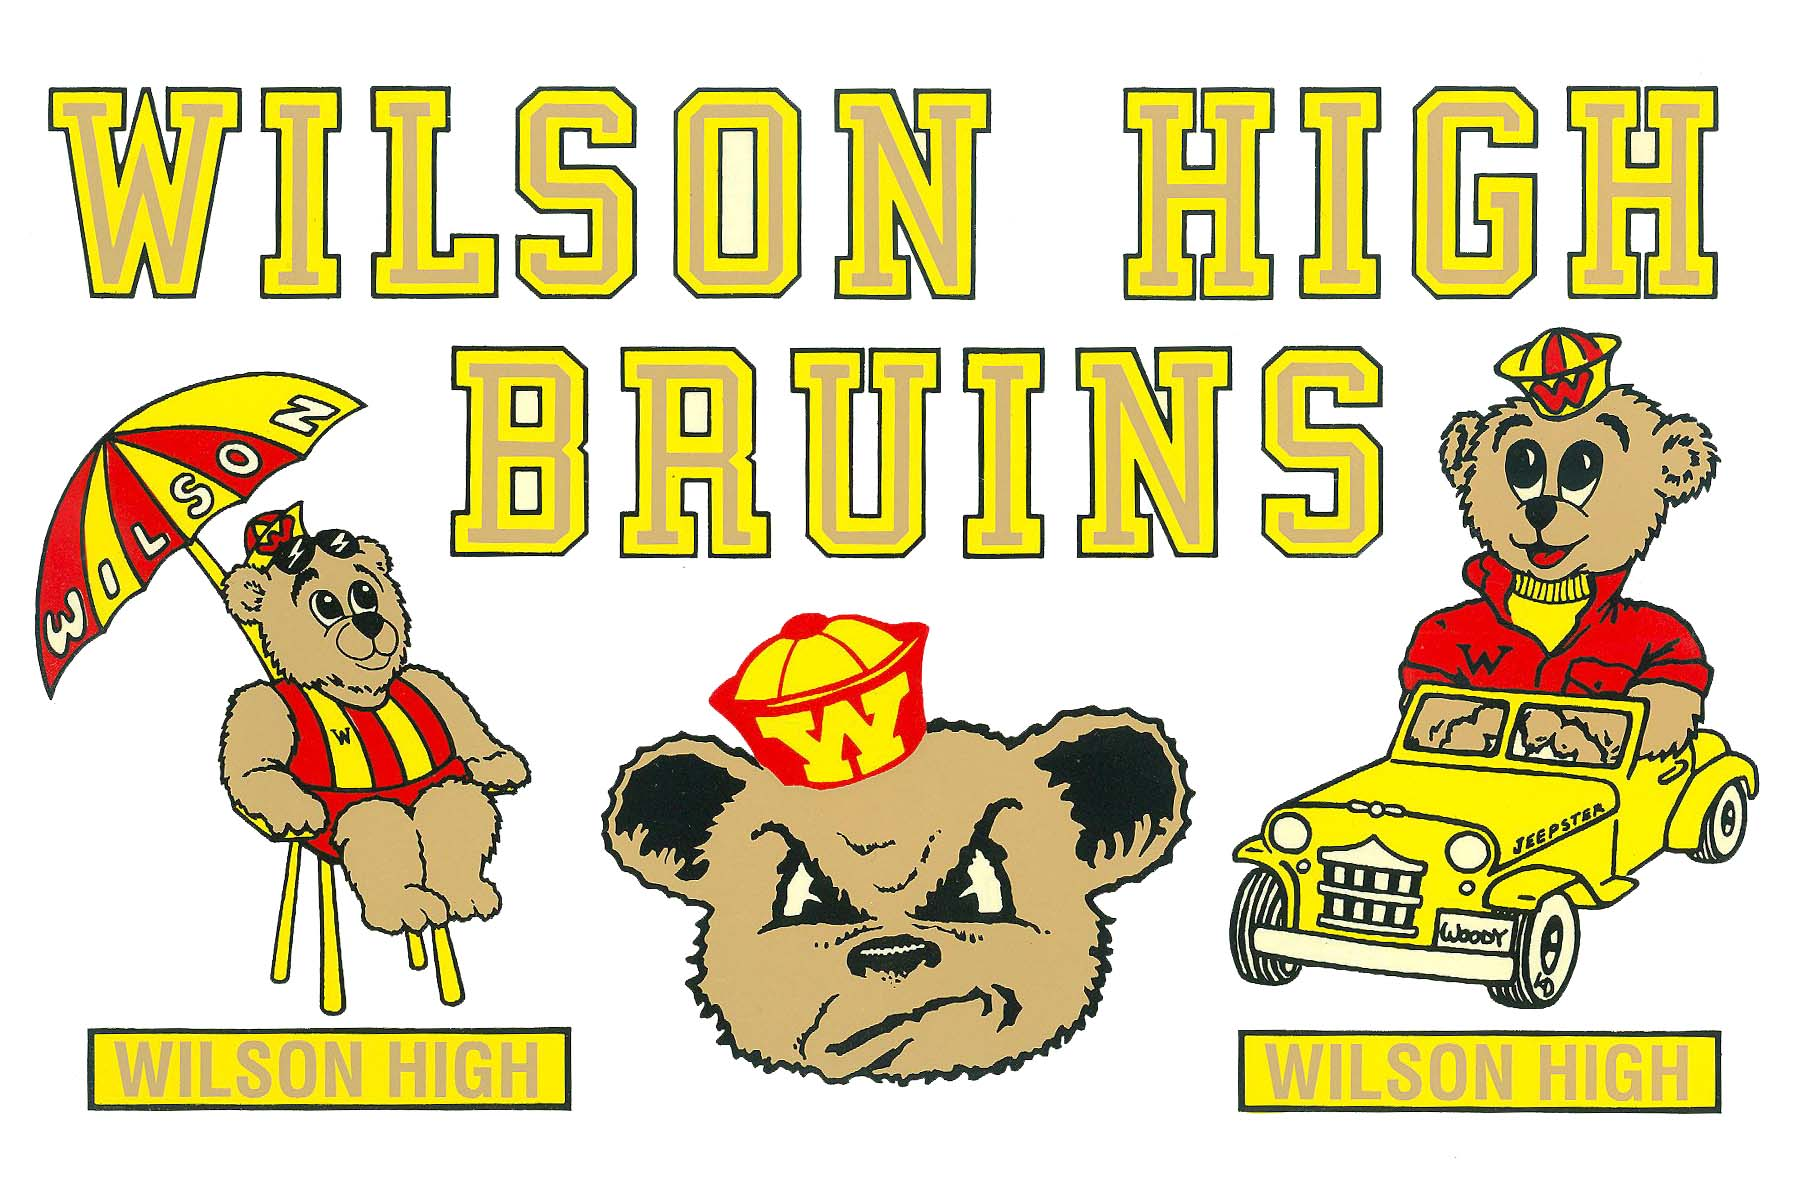 classic wilson high bruins images